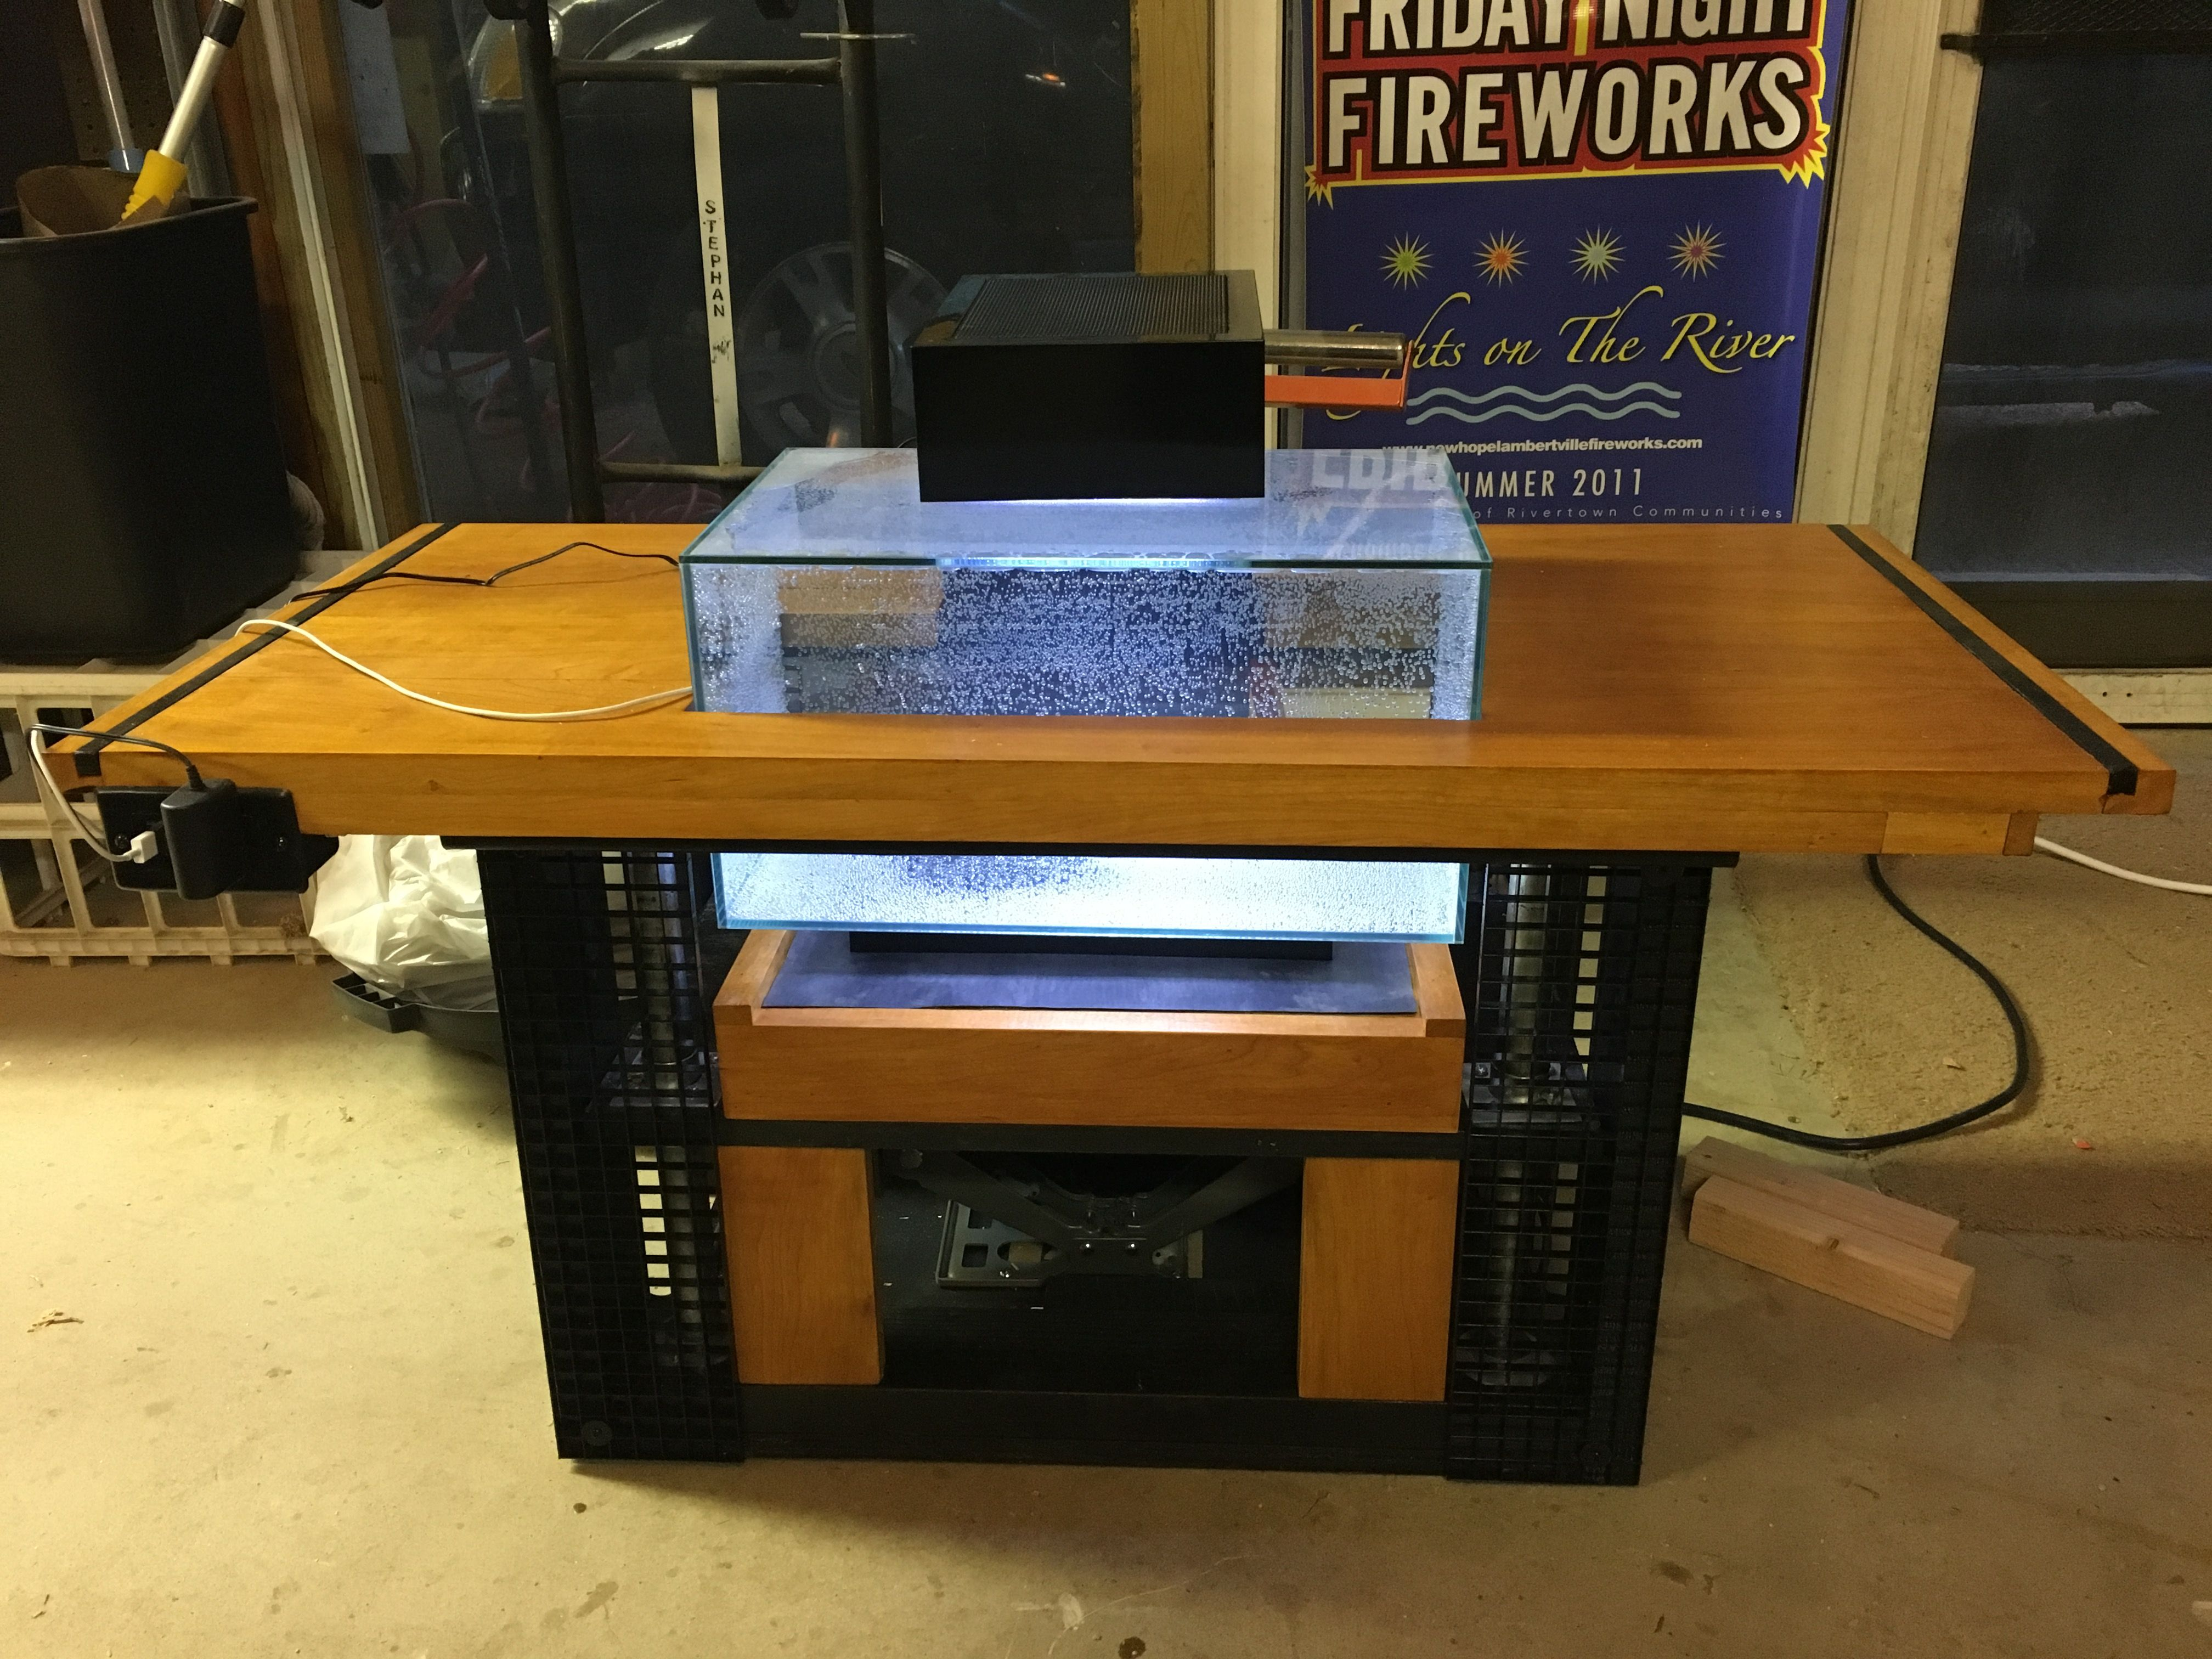 Fish tank coffee table An automatic car jack lifts the tank up and